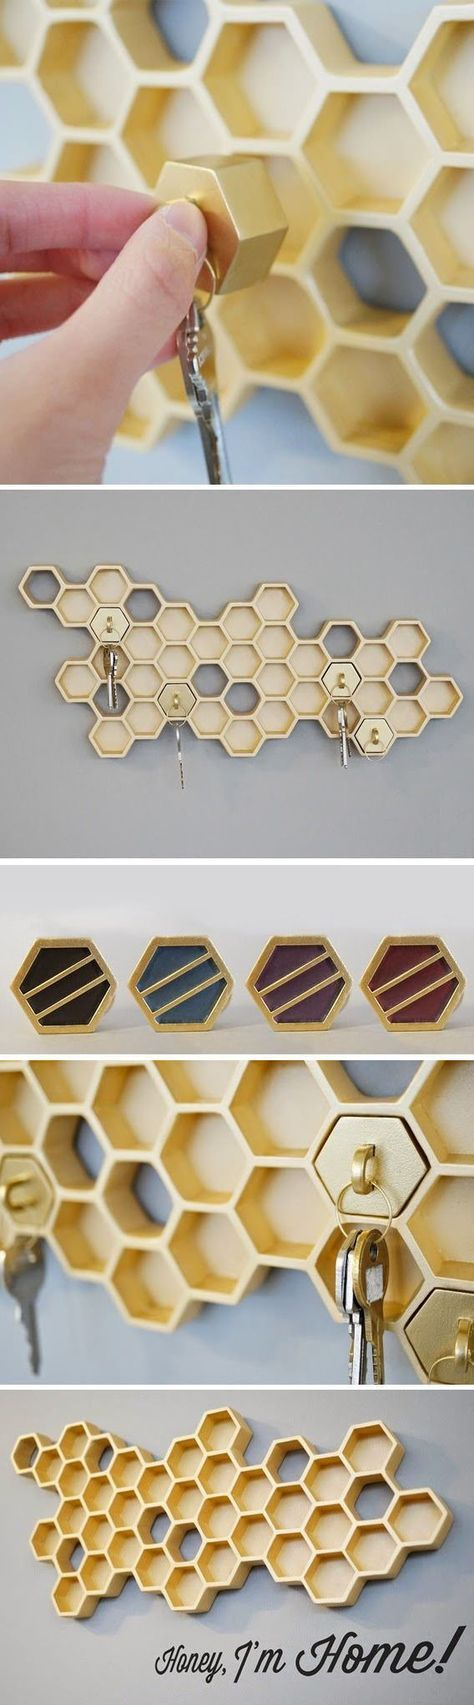 Honey Comb Key Rack // SO cUte! #diy #inspiration #organize